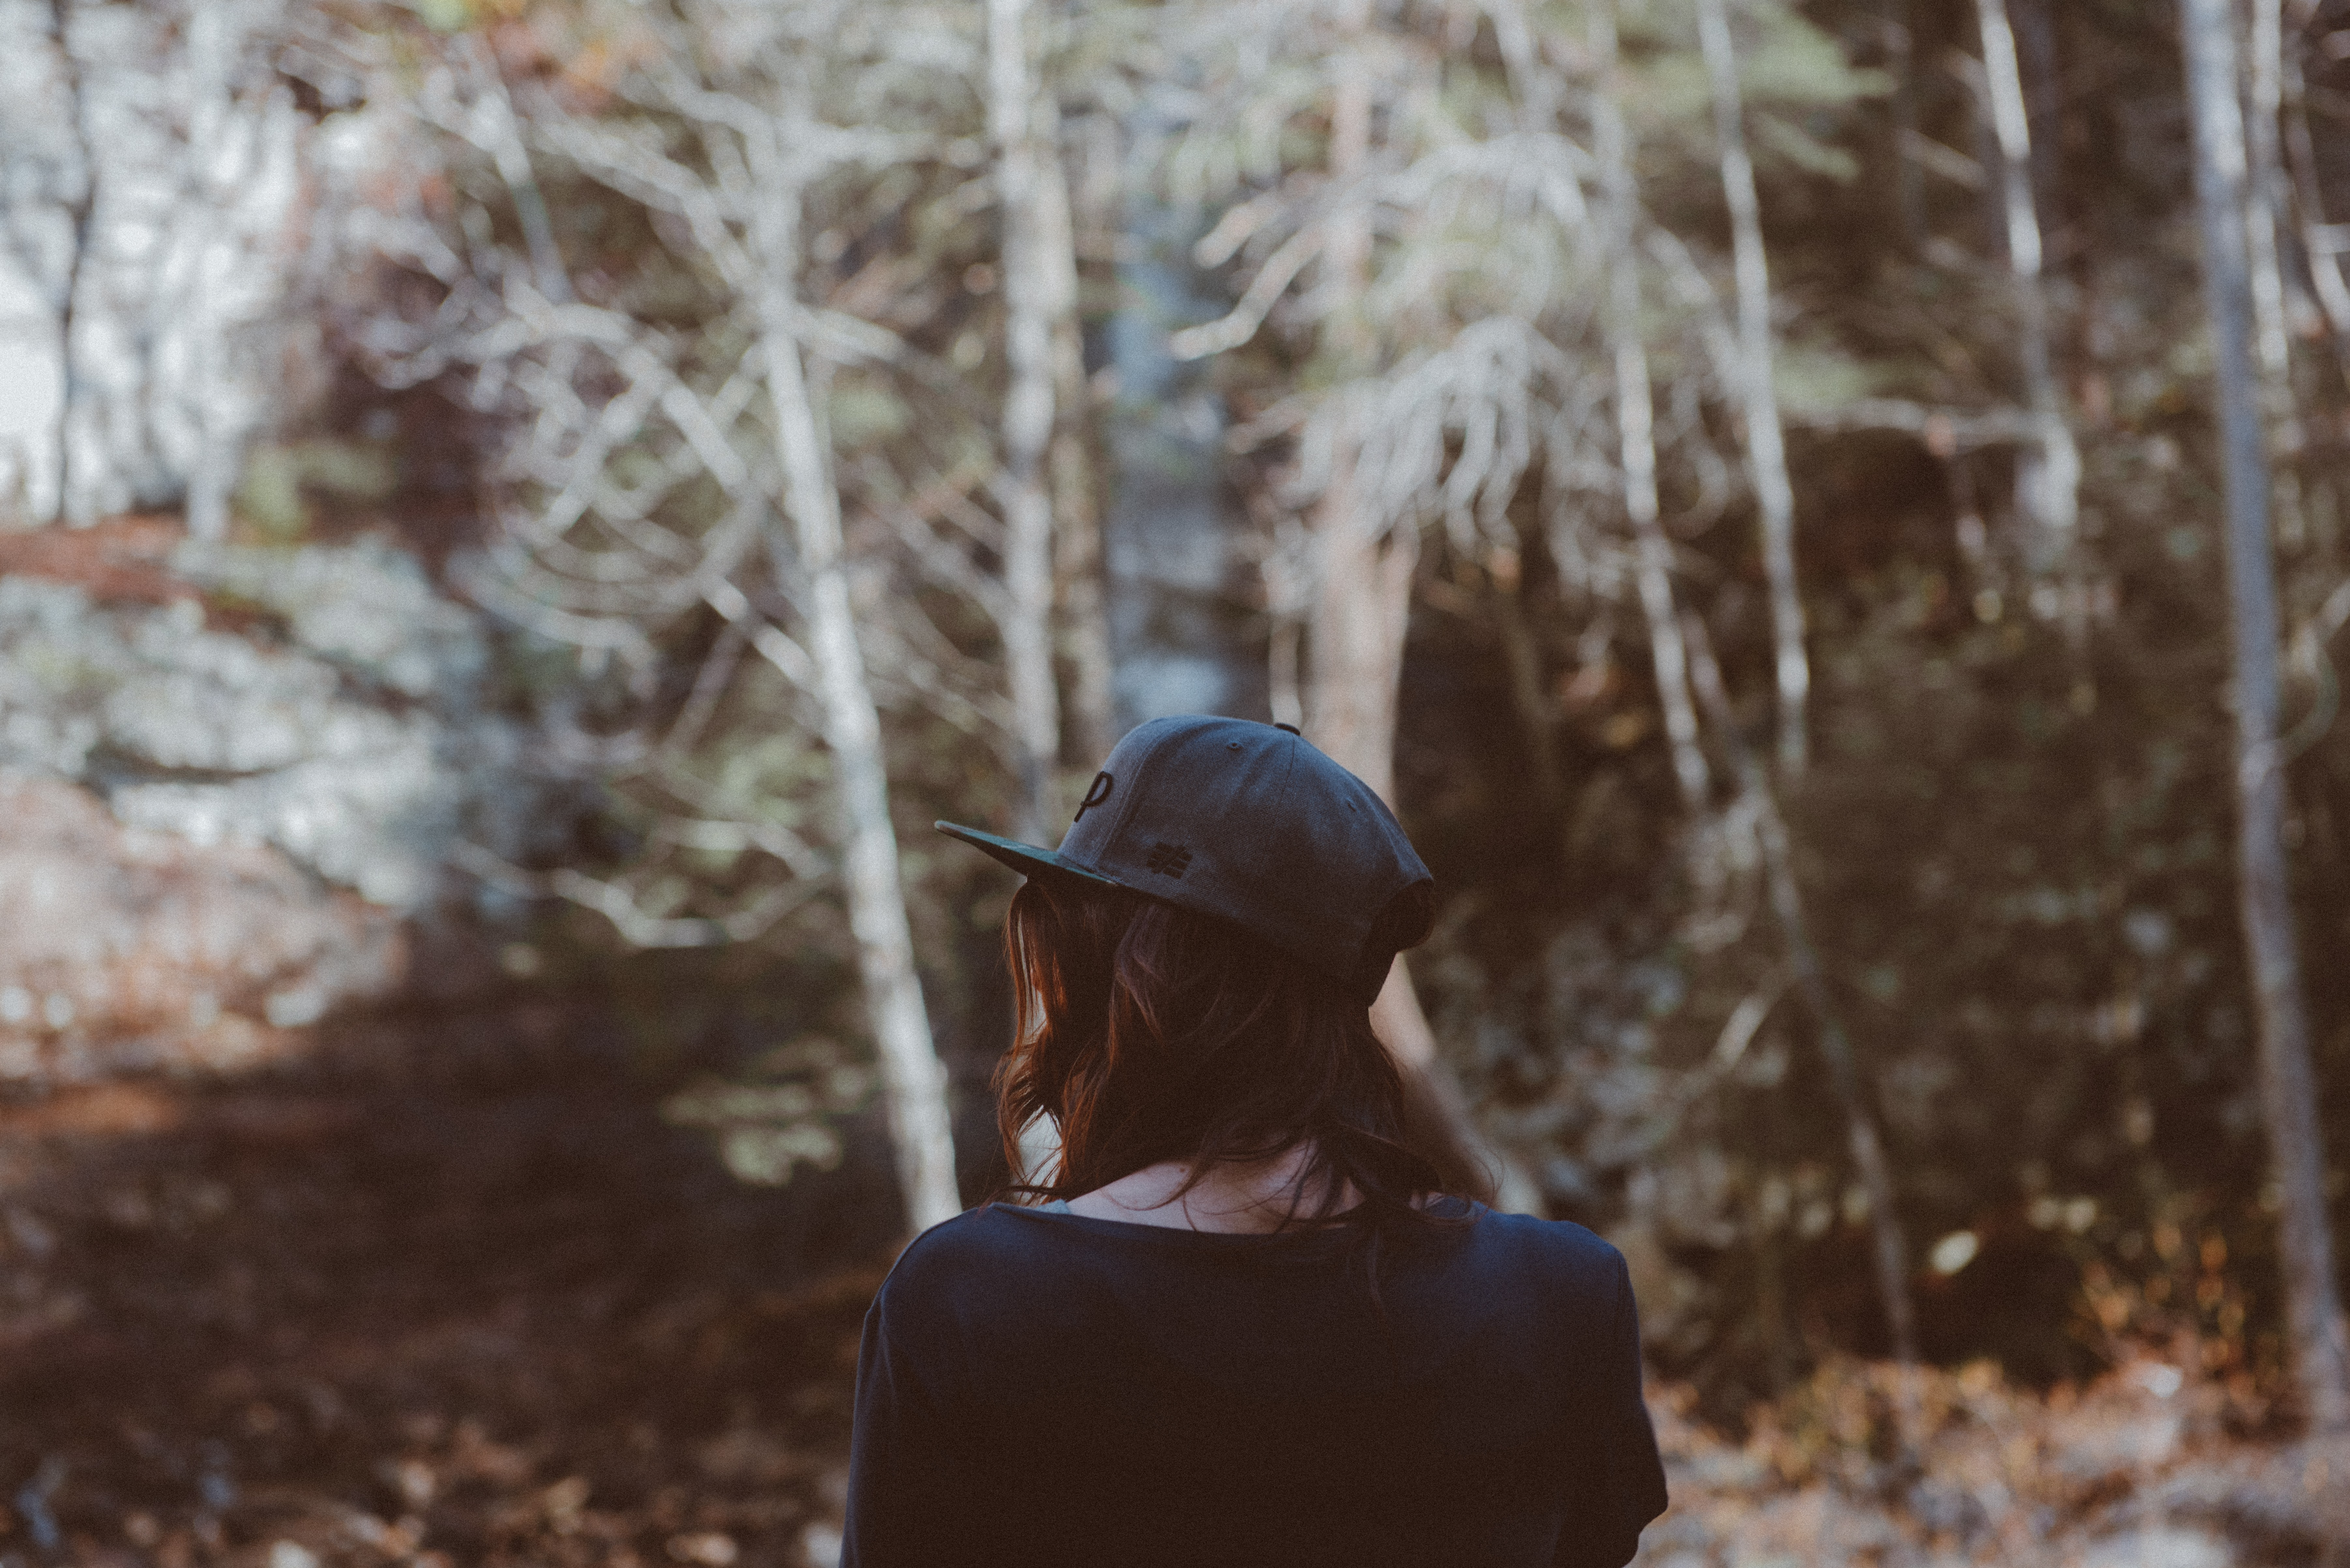 The back of a girl wearing a baseball cap standing in a forest